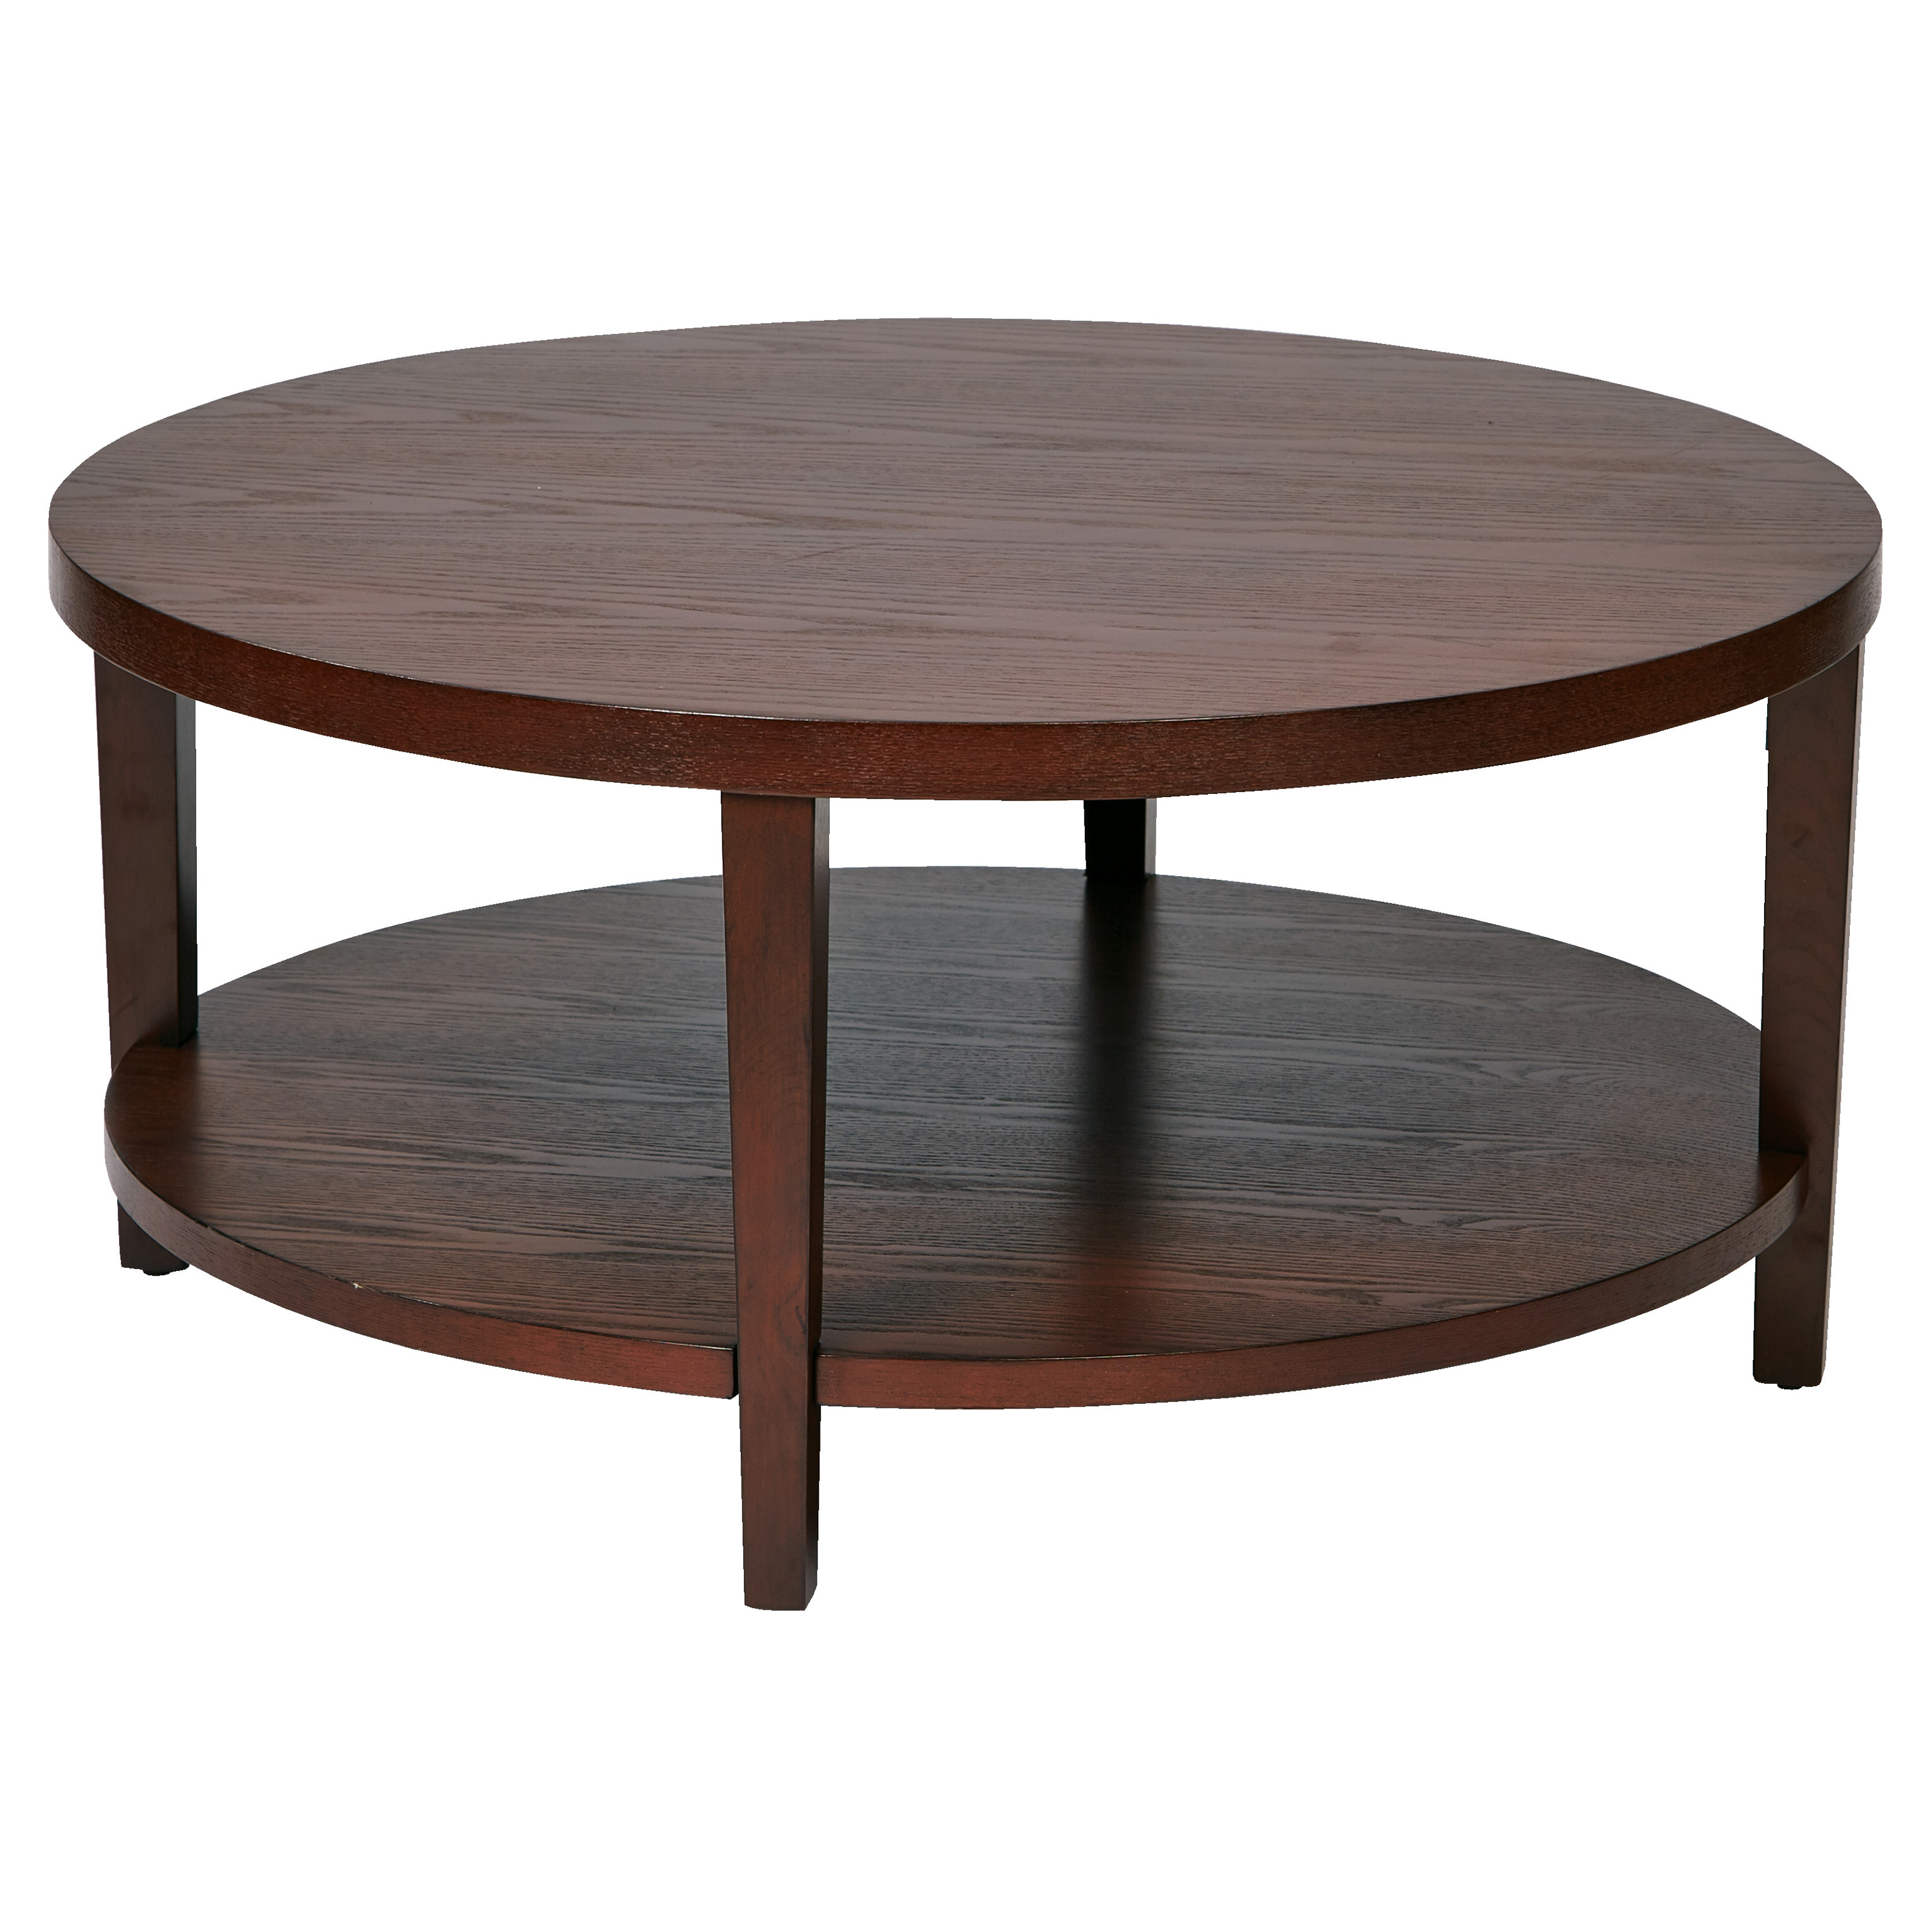 Work Smart/Ave Six Merge 36 In. Round Coffee Table